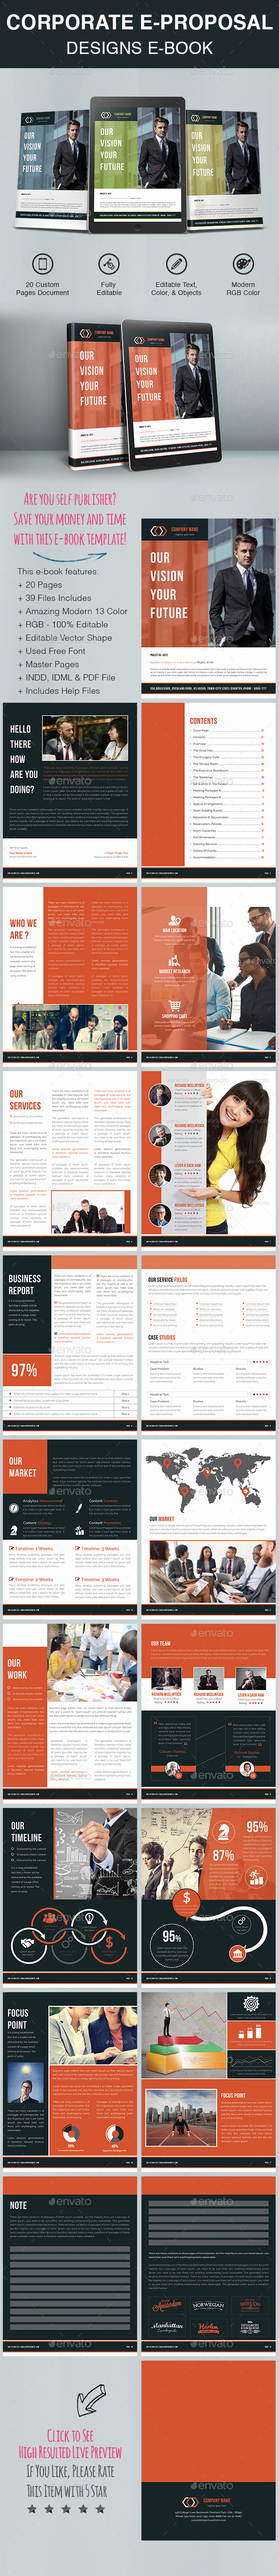 Corporate E-Proposal Designs E-Book - ePublishing